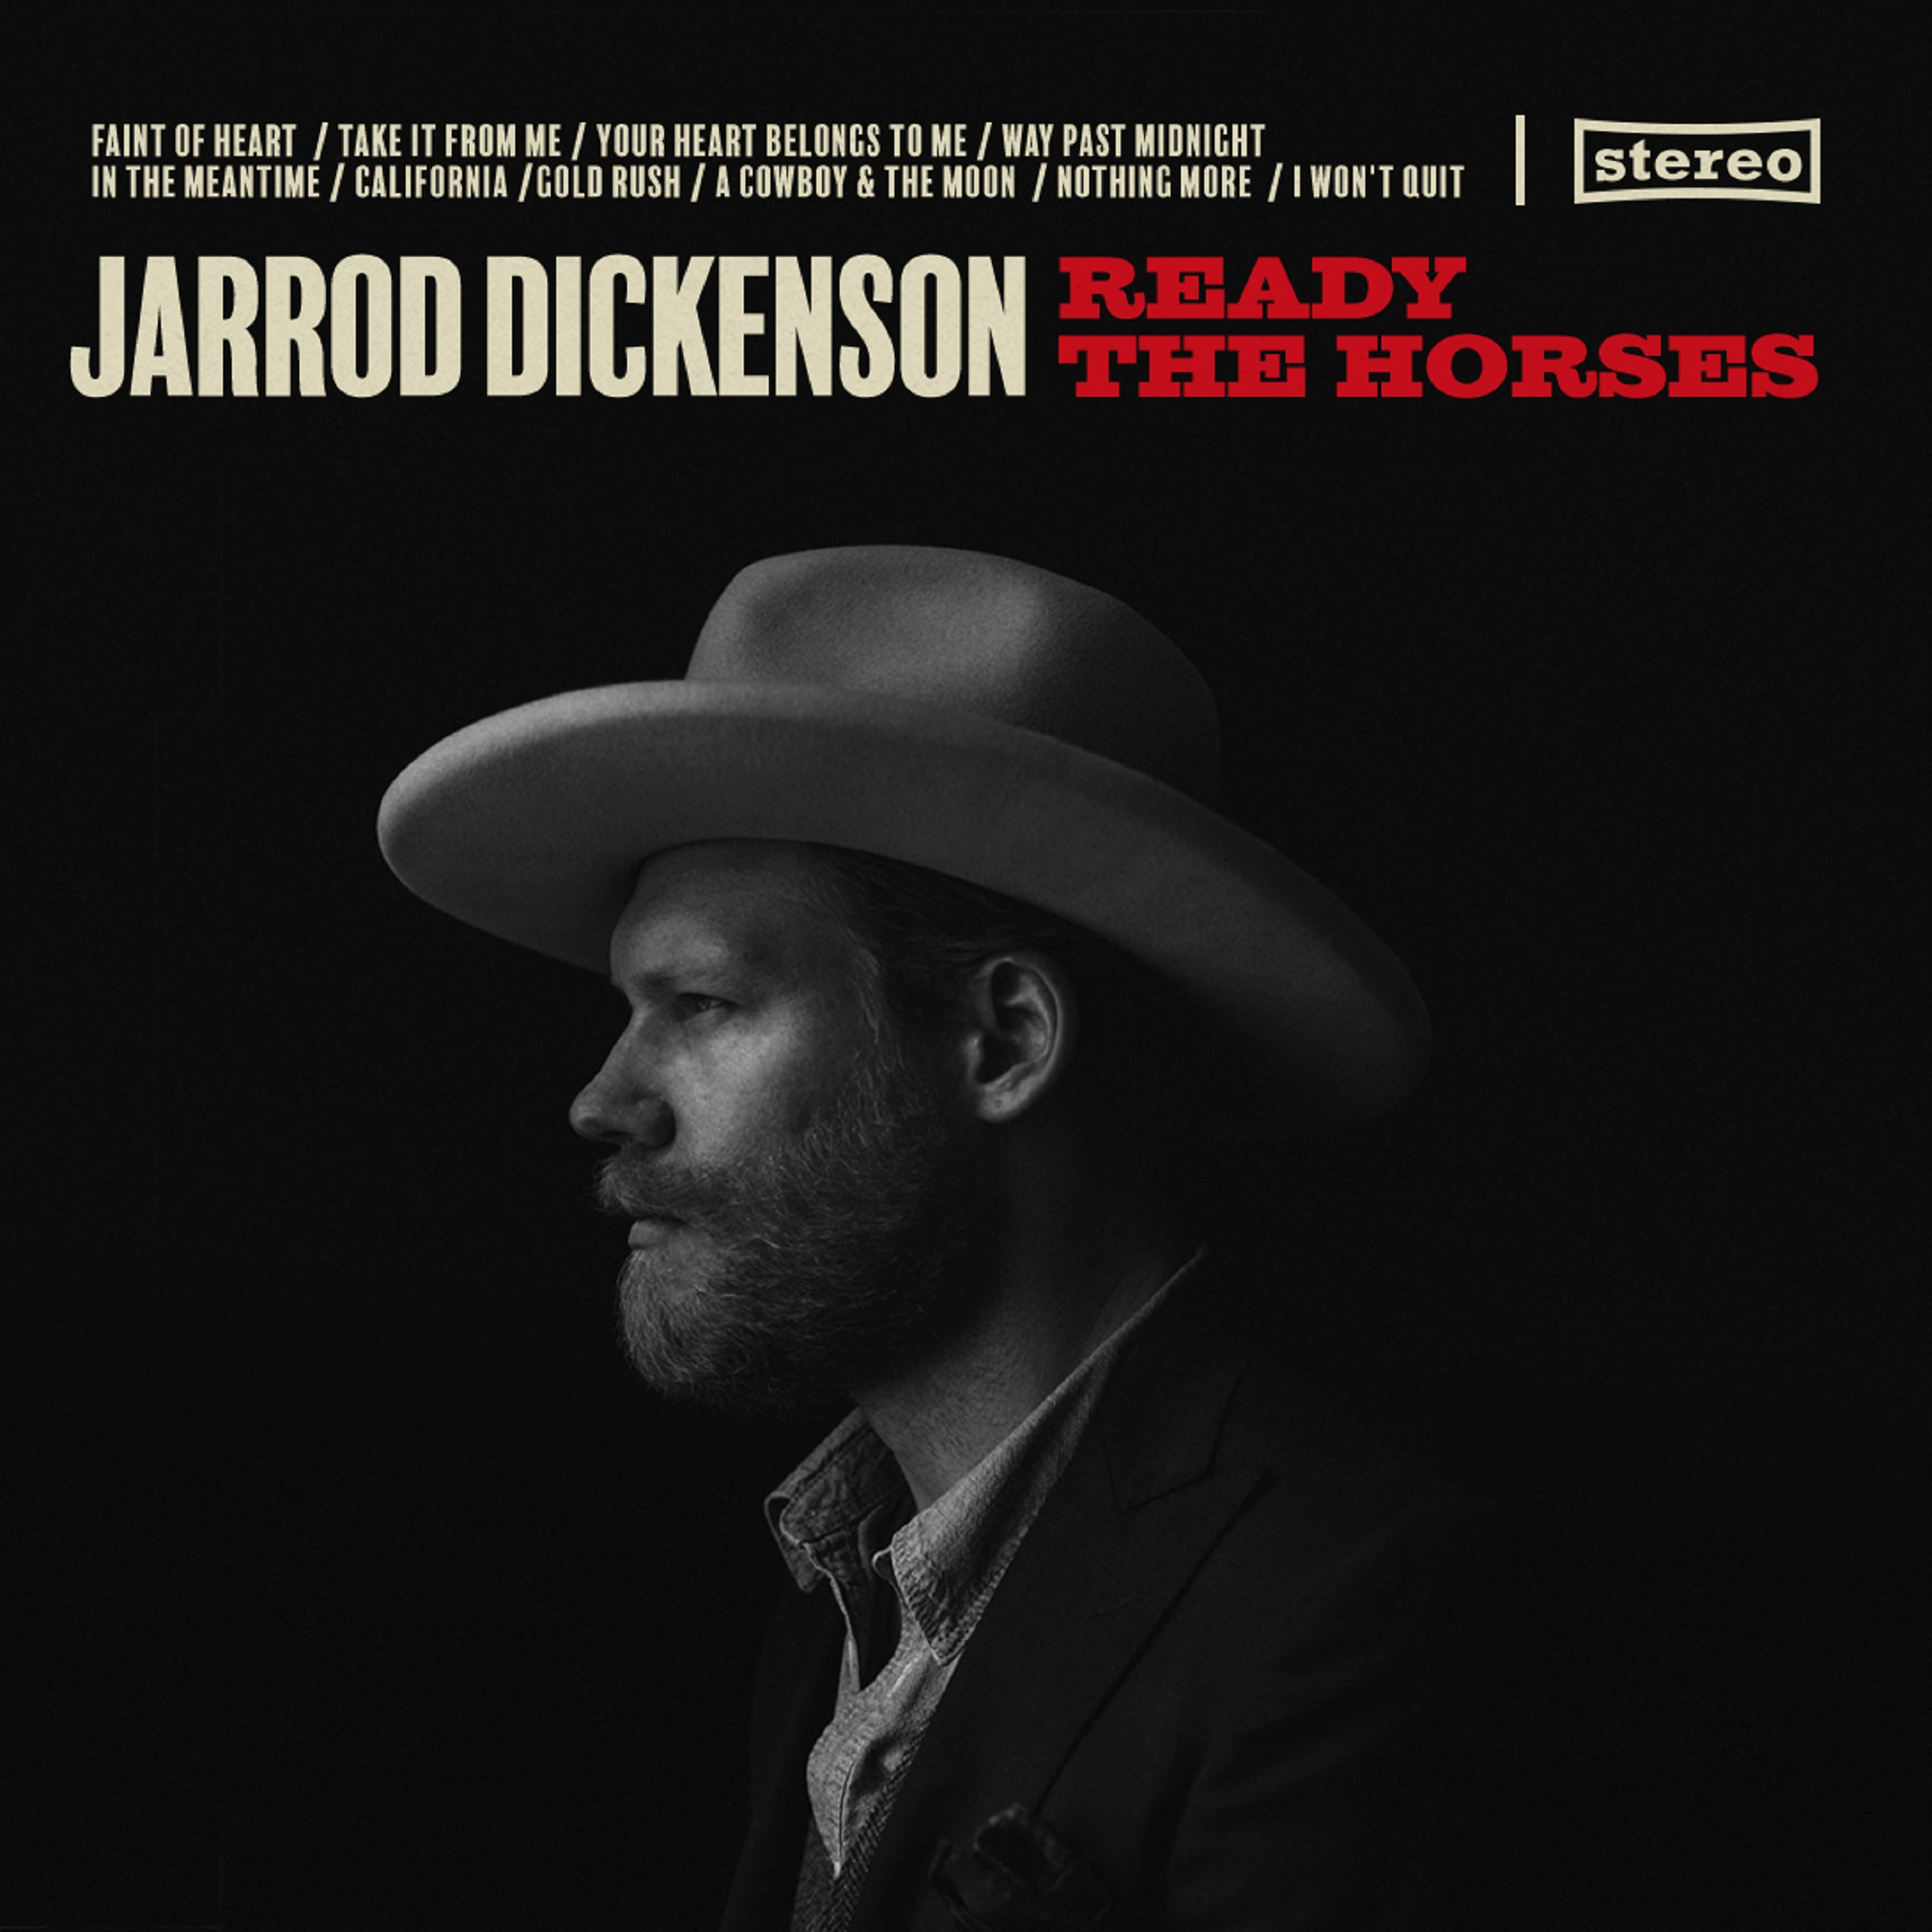 Jarrod Dickenson Returns with Ready The Horses on May 22